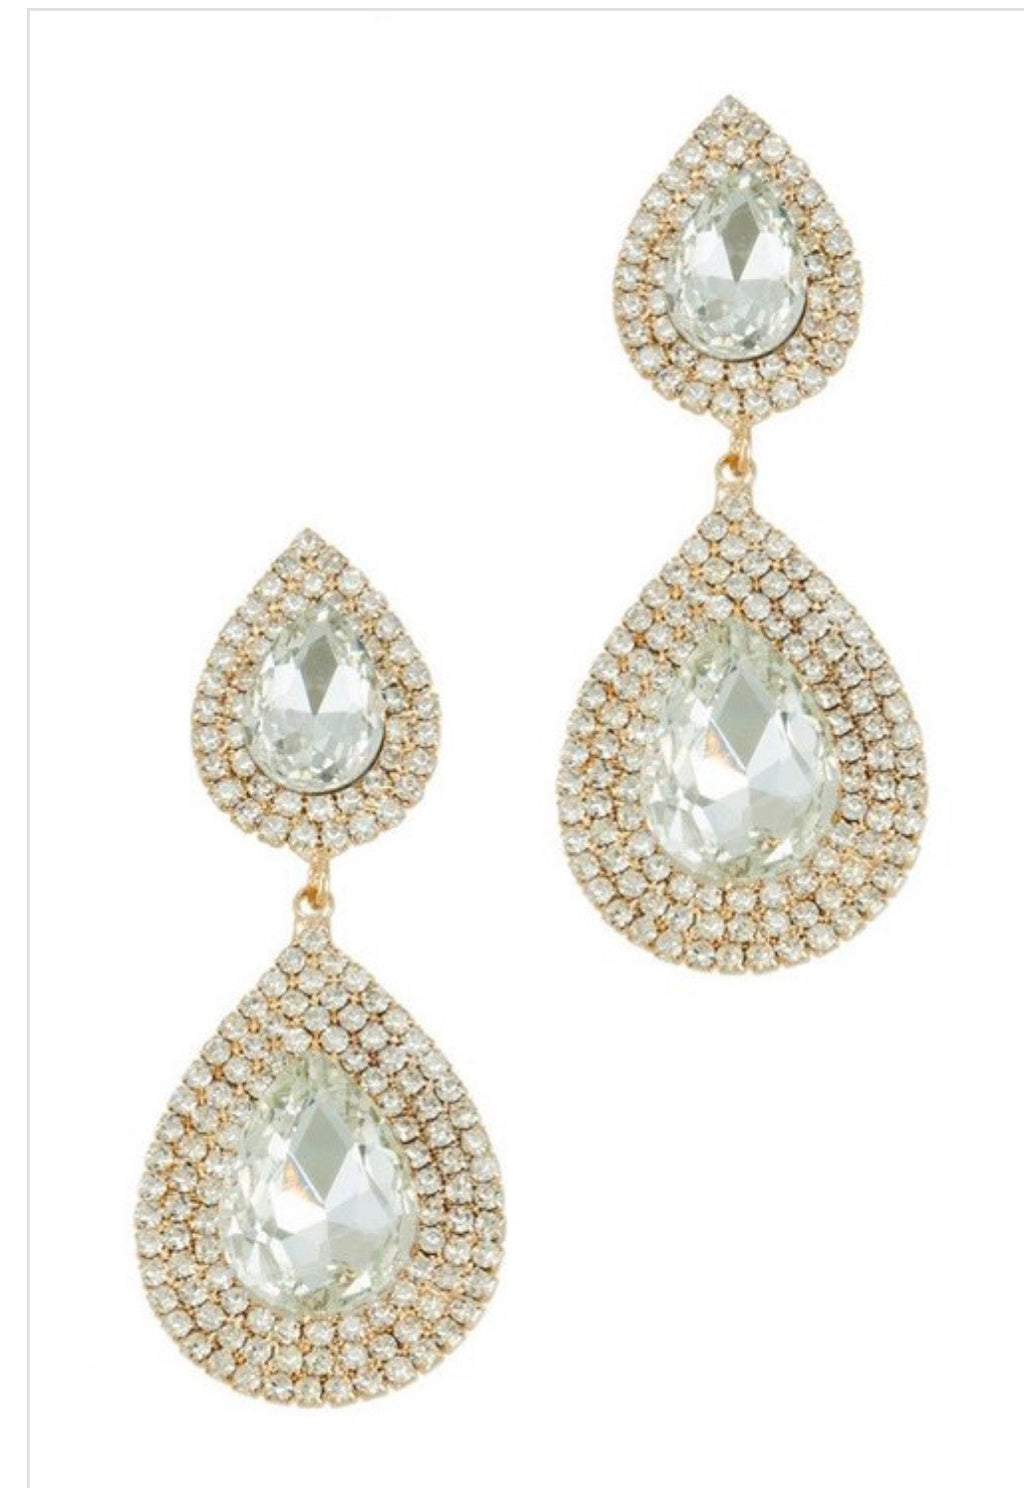 Bride earrings